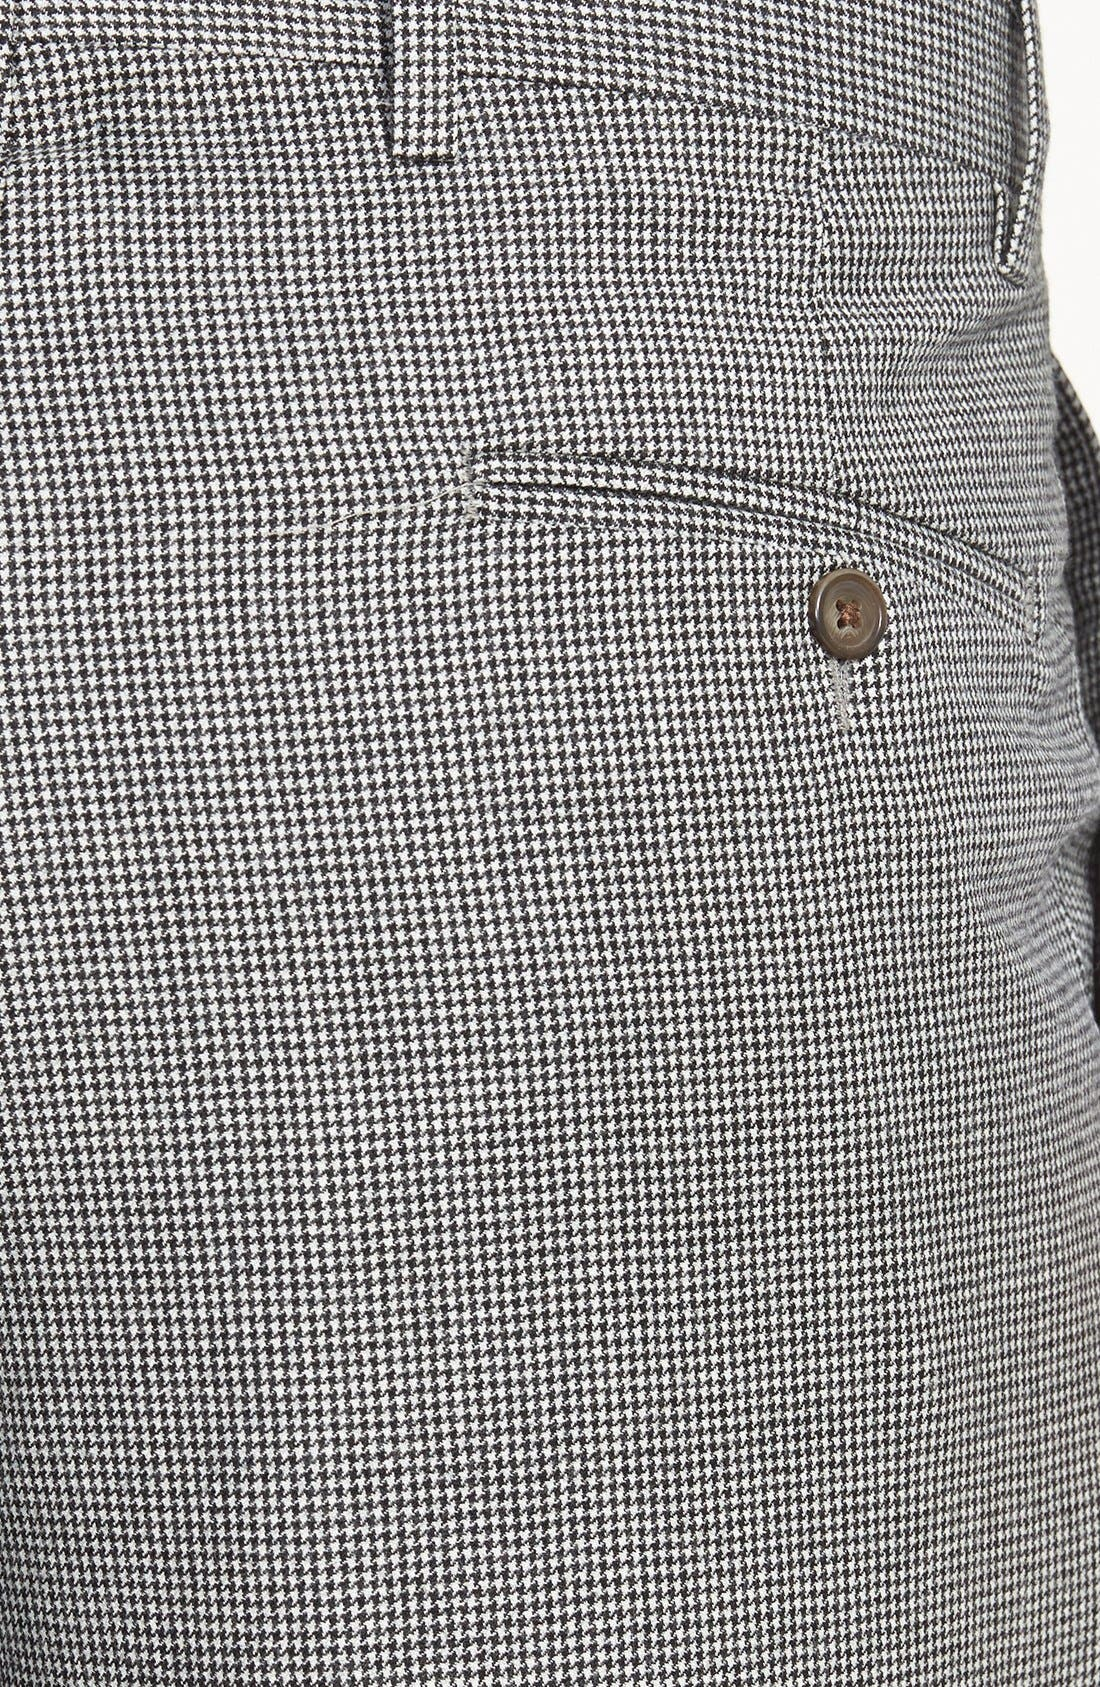 Pleated Houndstooth Wool Trousers,                             Alternate thumbnail 2, color,                             060